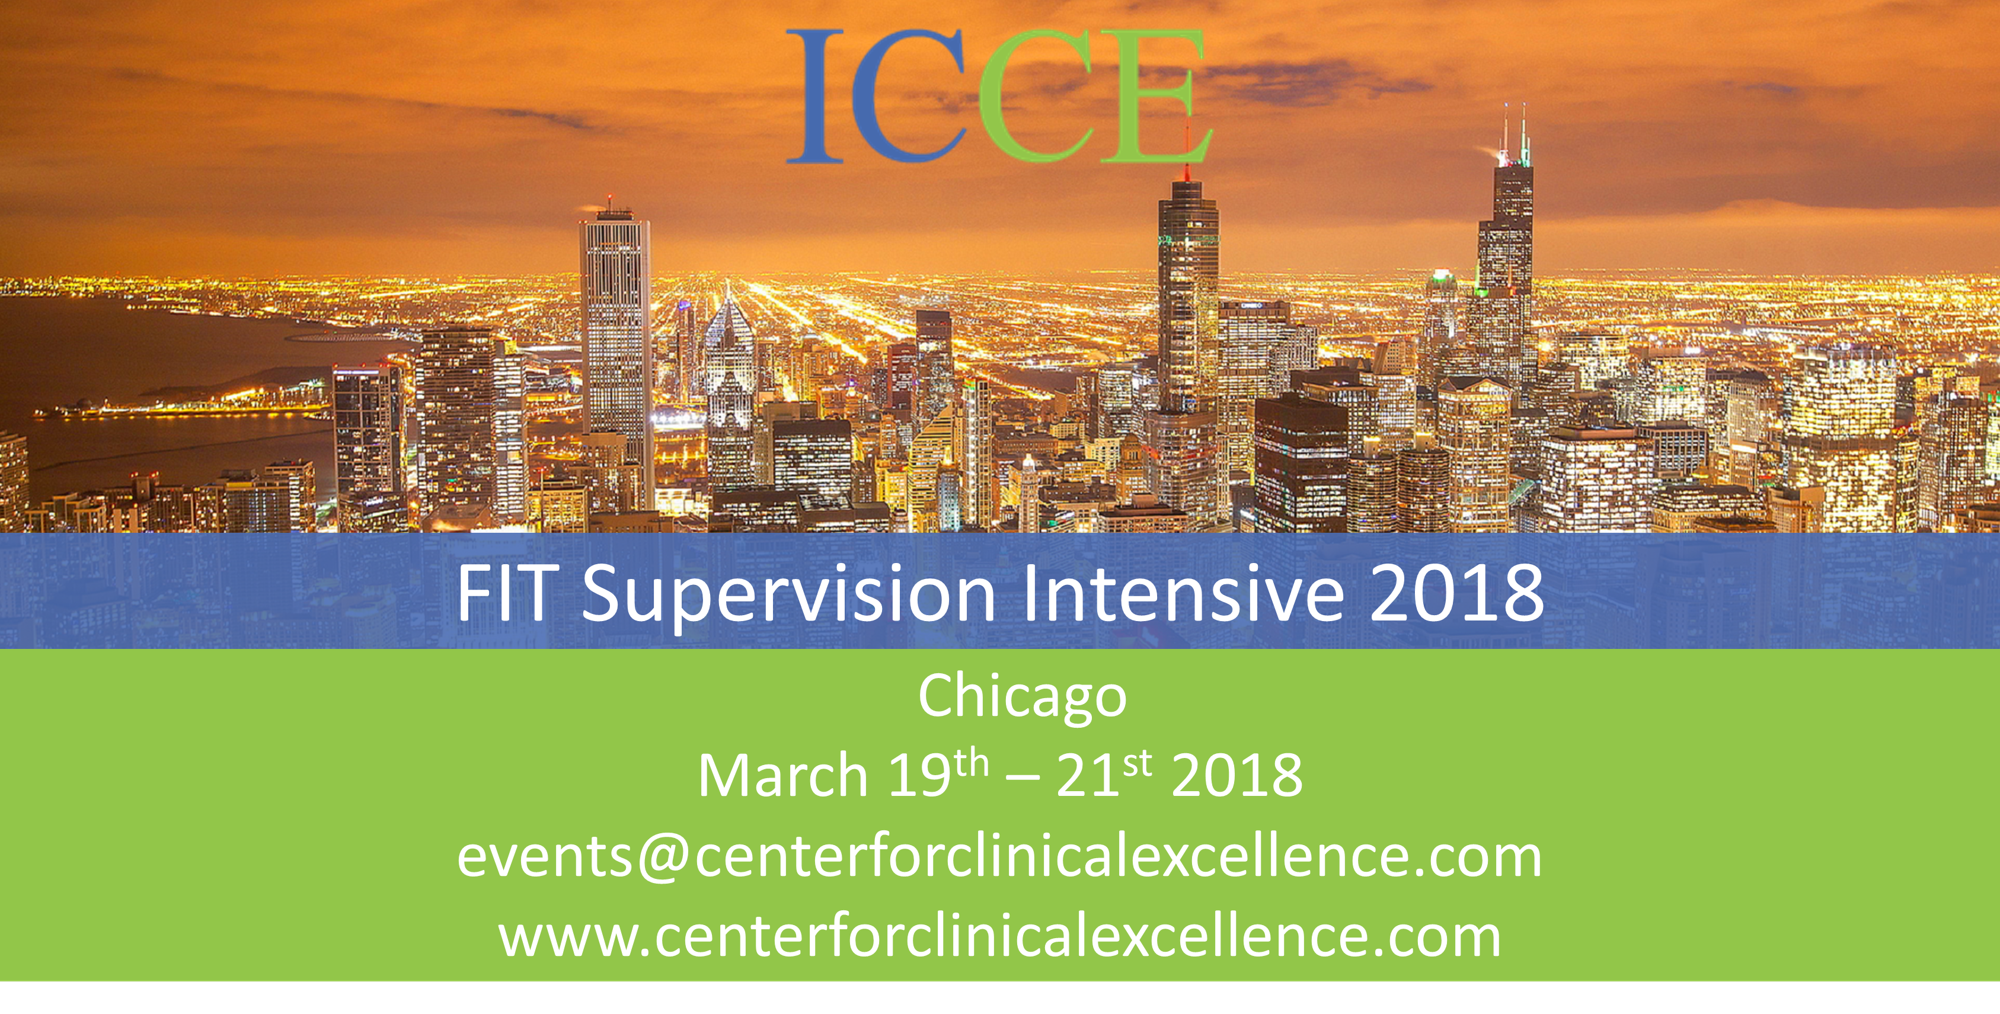 FIT Supervision Intensive 2018